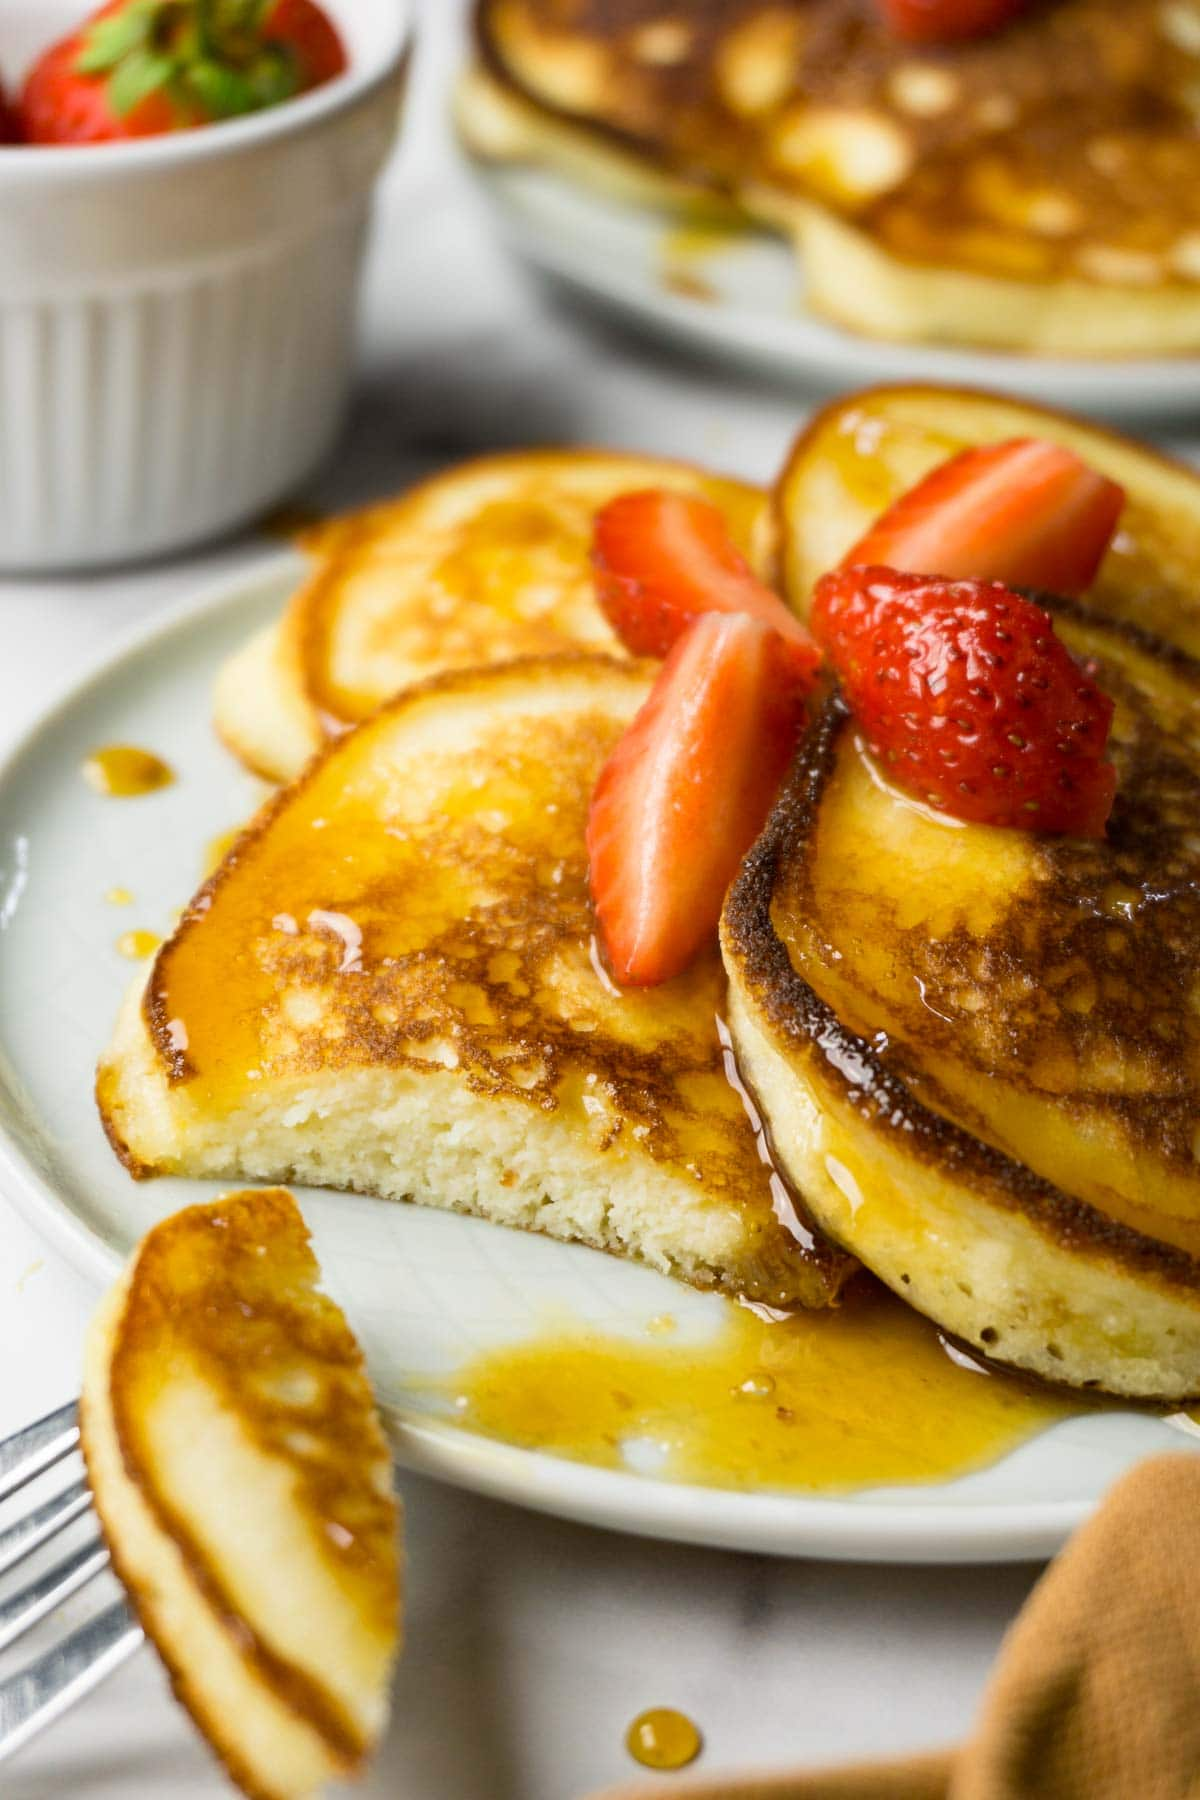 Pancakes on round plate with strawberries and sugar-free syrup, one piece is missing from one pancake.